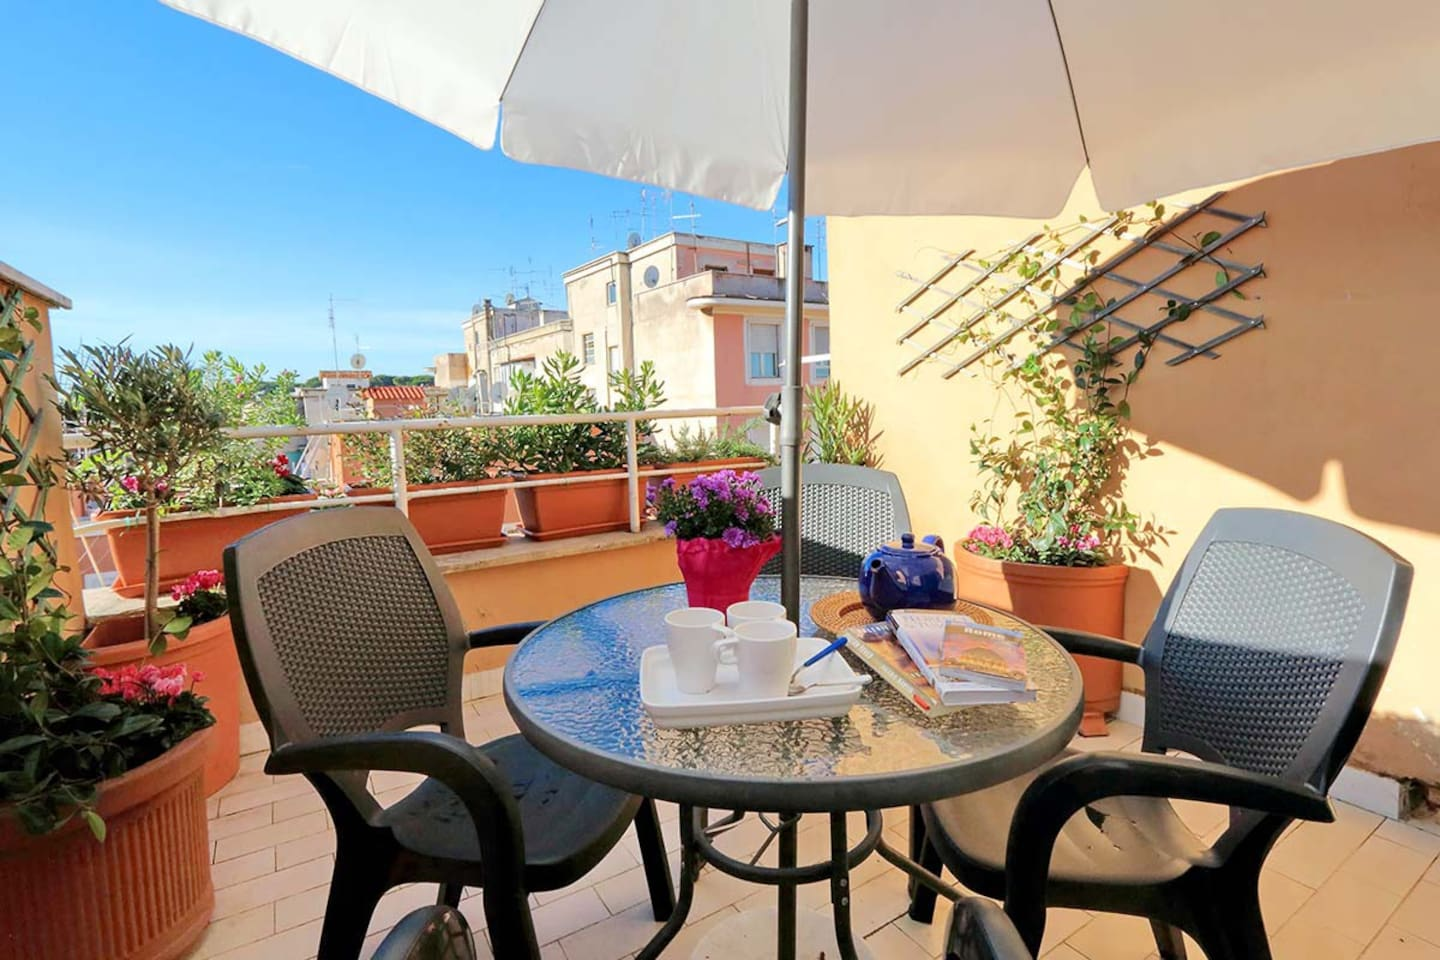 One bedroom holiday apartment near the Coliseum - Terrace